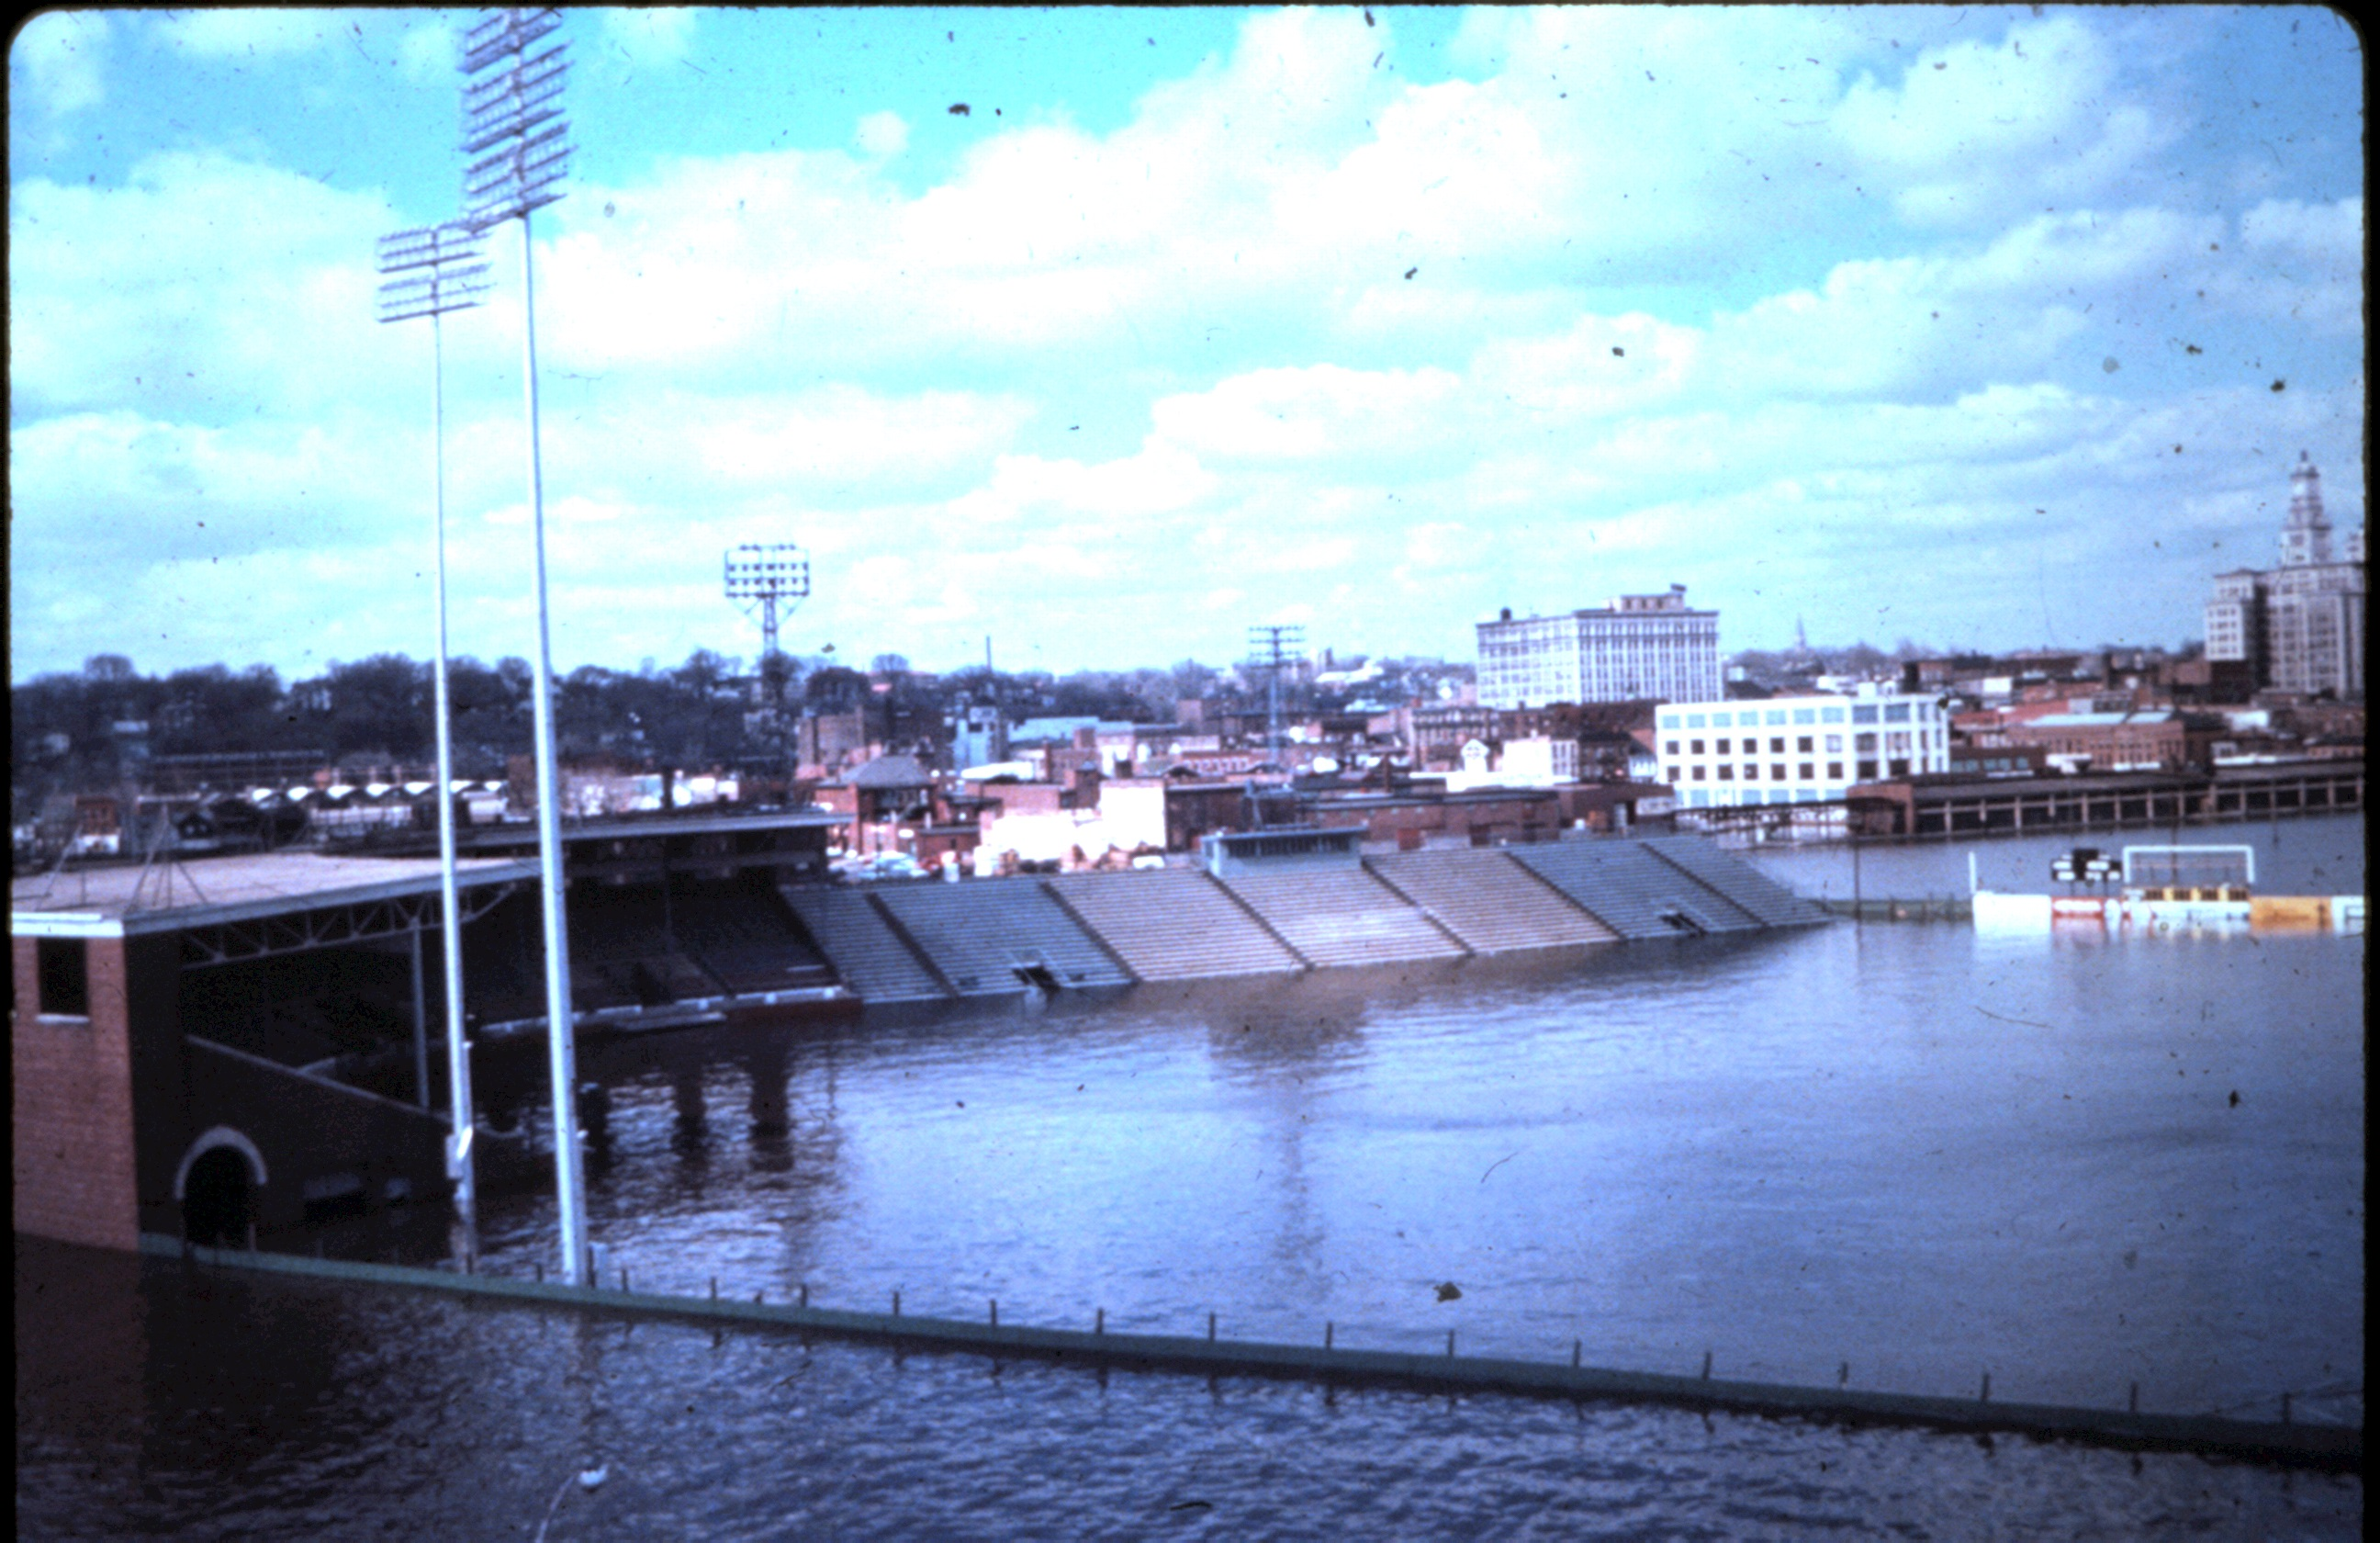 Davenport's Municipal Stadium, home of the Quad-City Angels, farm team of Los Angeles Angels.